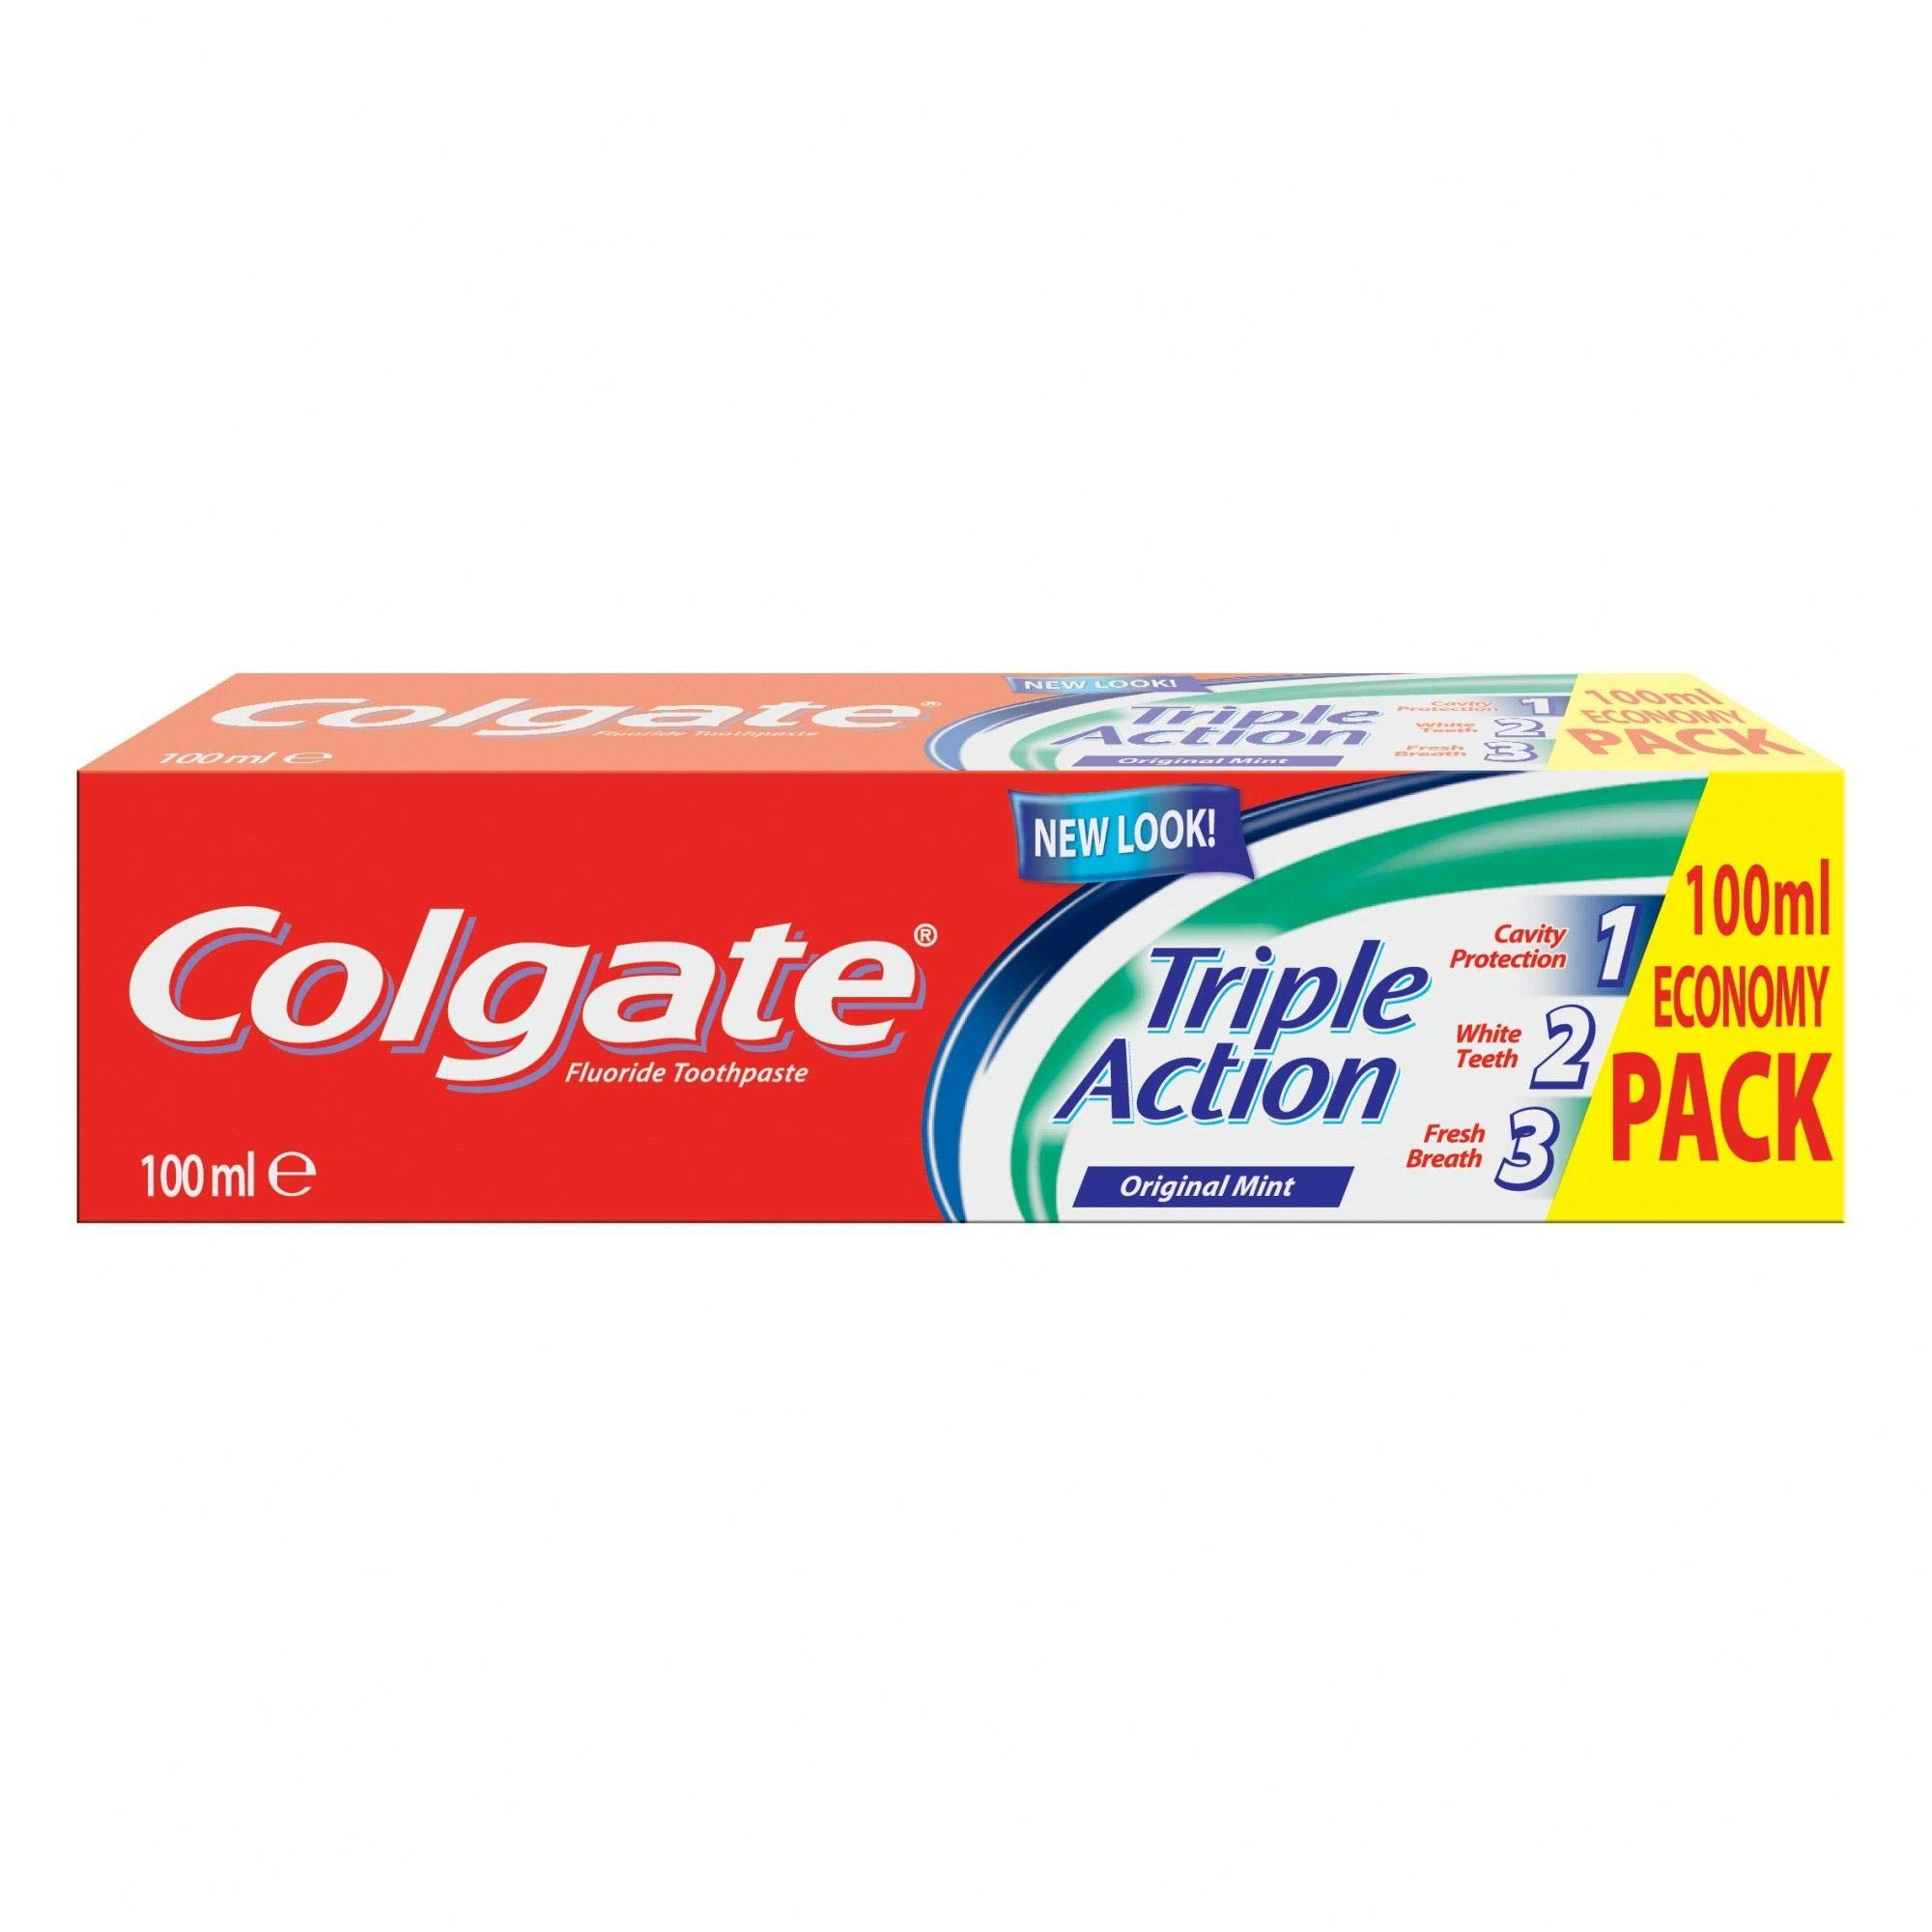 Colgate Triple Action Toothpaste, 100 ml